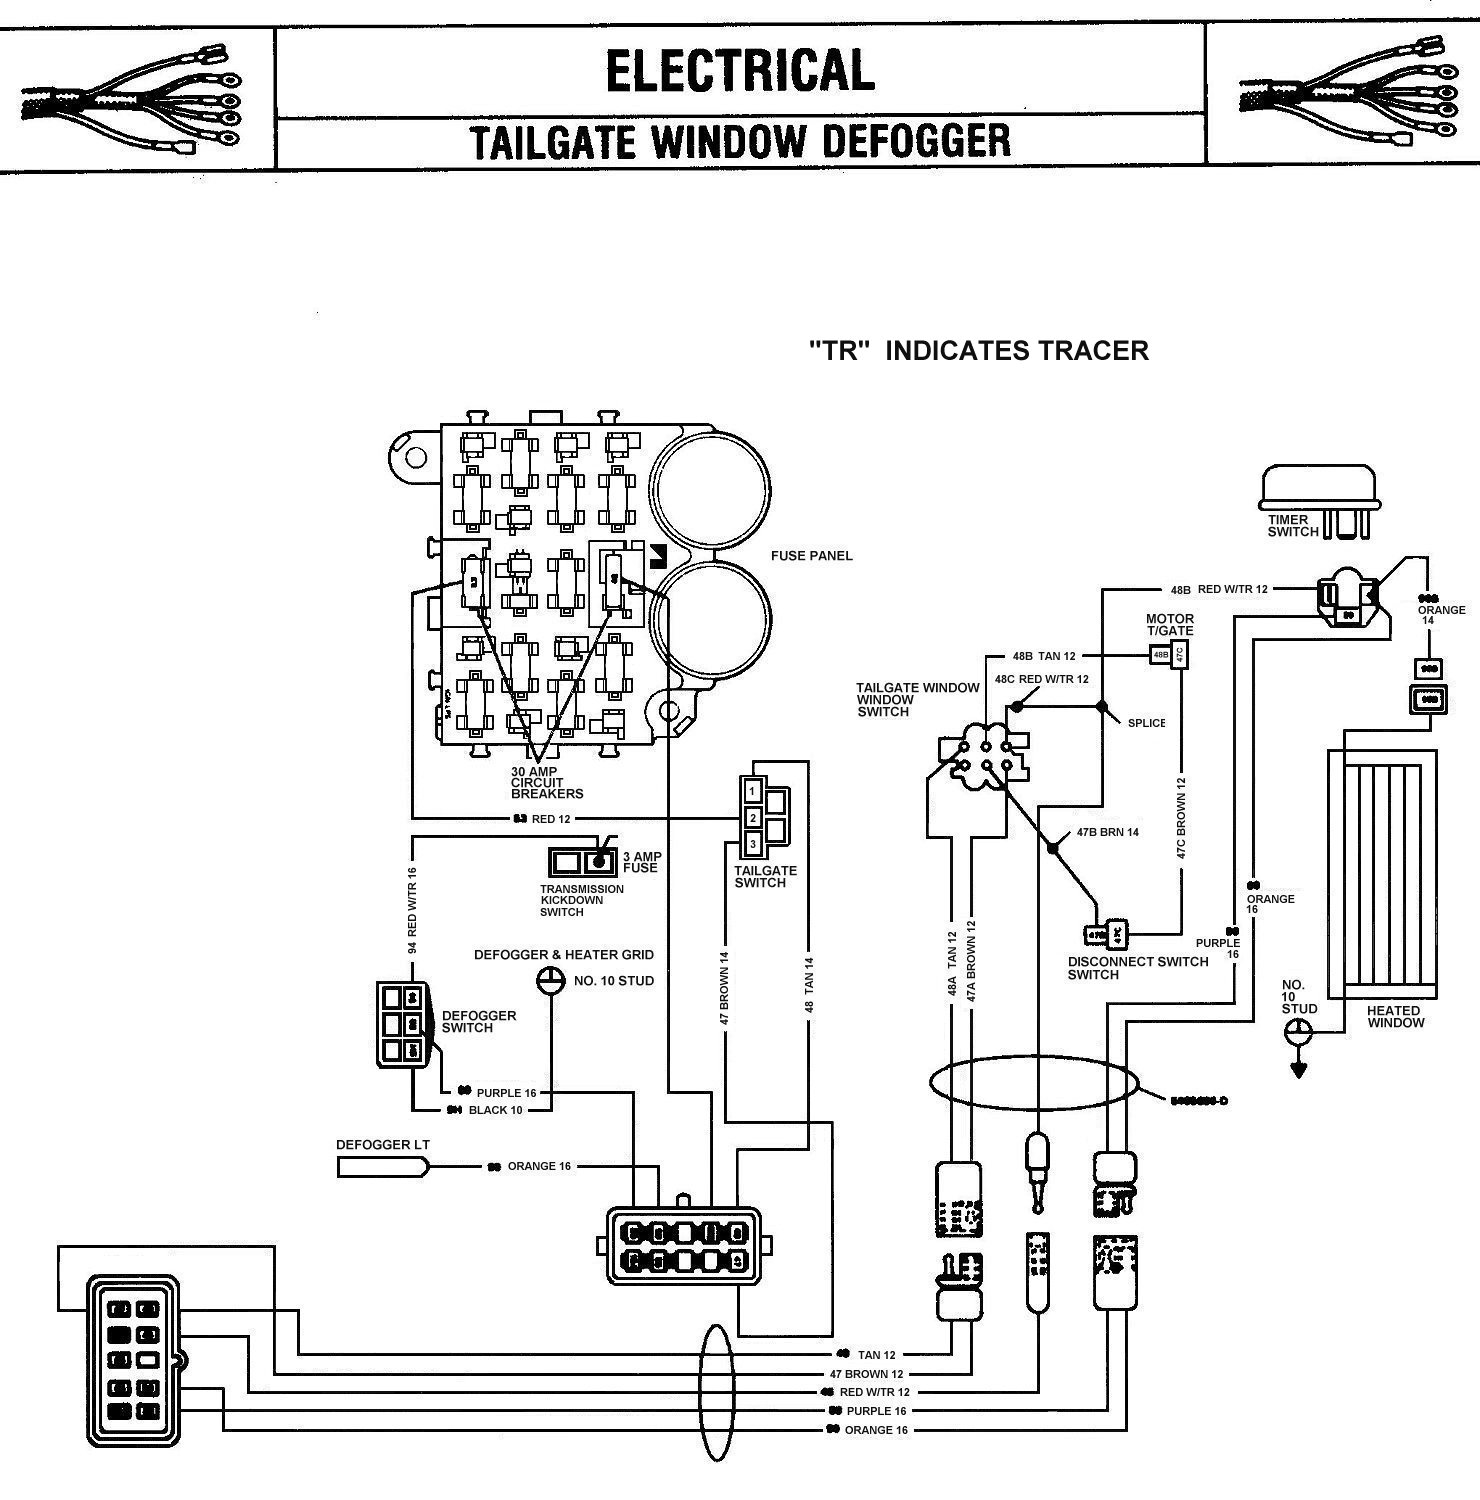 hight resolution of 1979 ford rear window wire diagram wiring diagram third level 1989 f150 wiring diagram 1989 suburban rear window wiring diagram